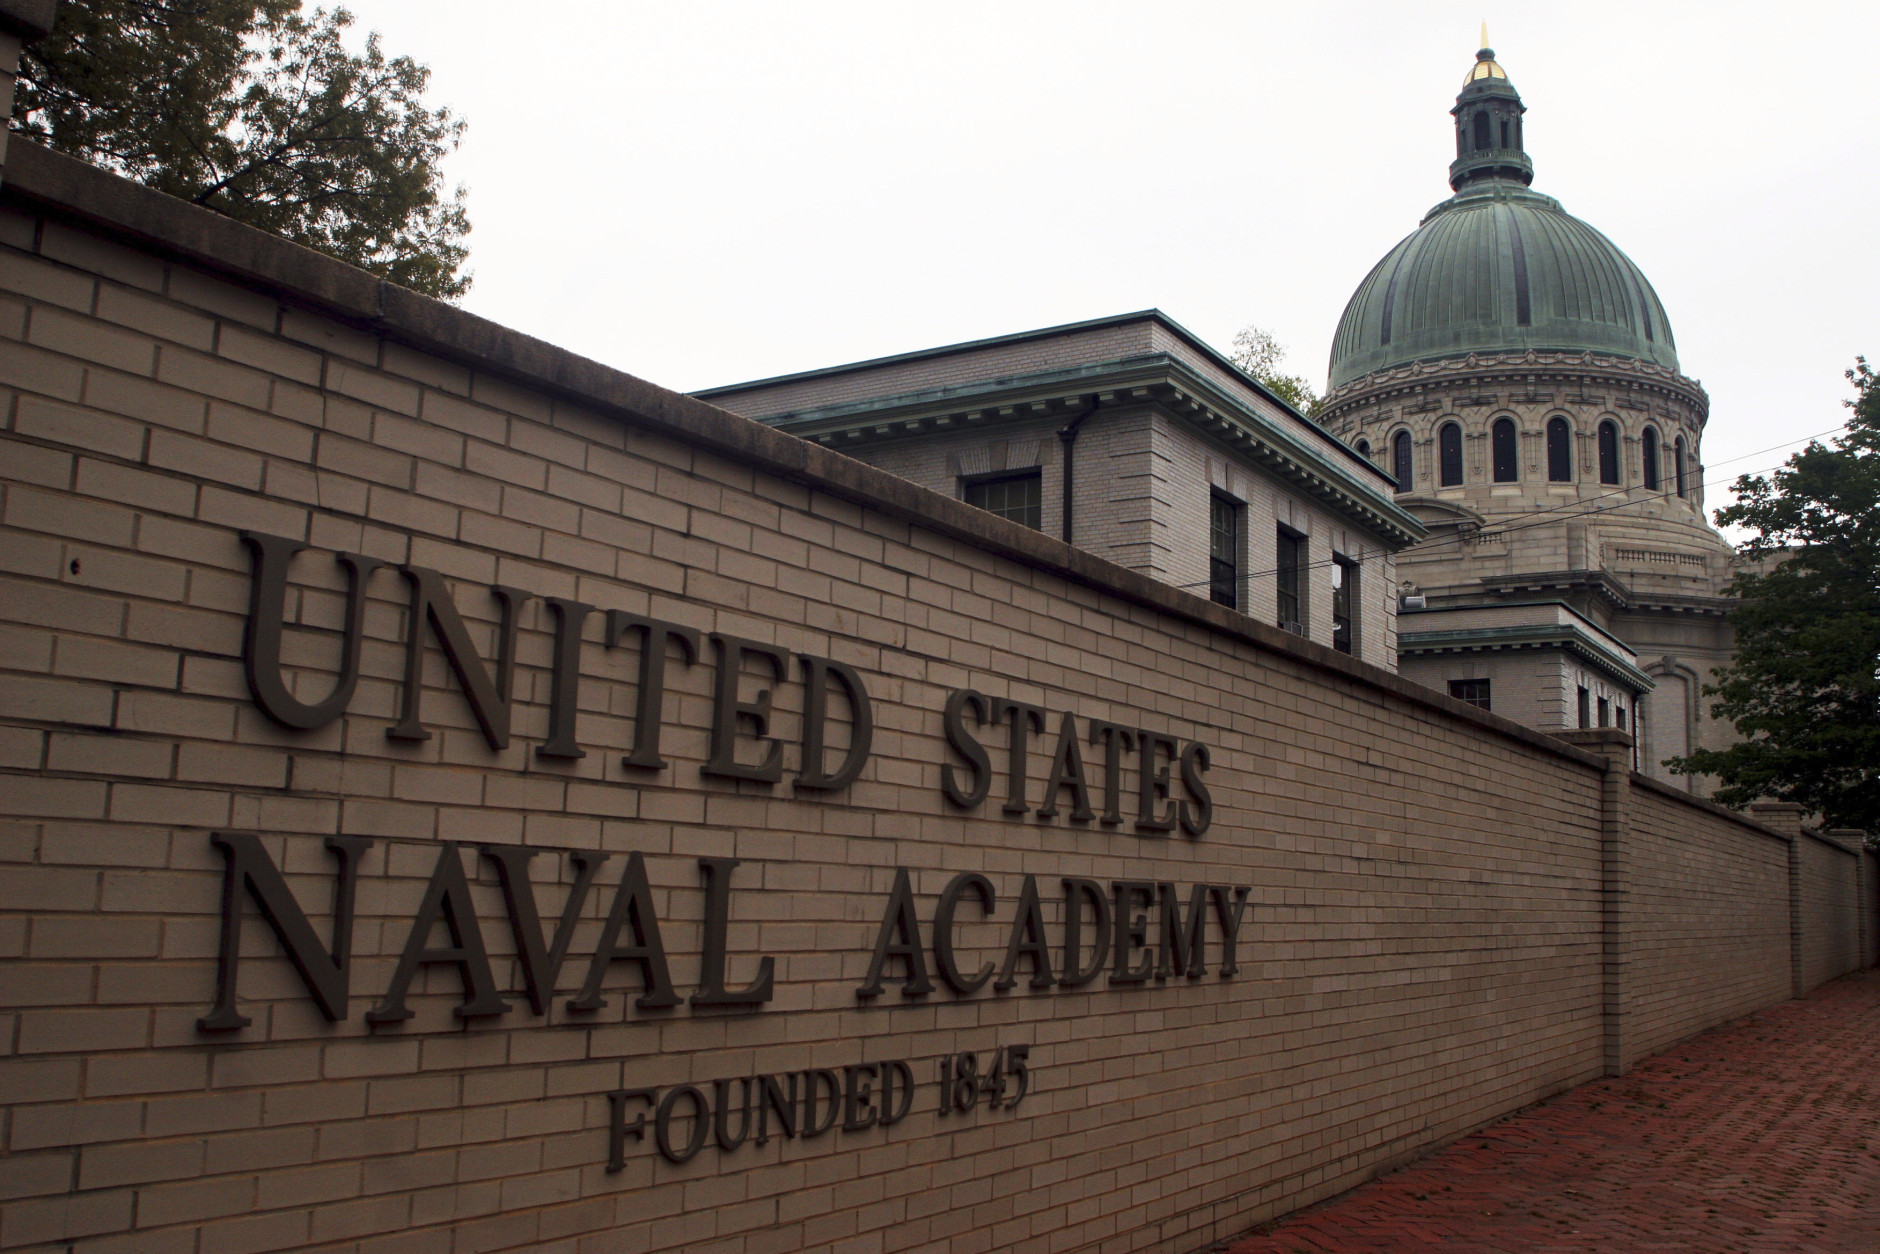 FILE - This May 10, 2007 file photo shows the U.S. Naval Academy in Annapolis, Md. Reports of sexual assaults at the three military academies jumped by more than 50 percent in the 2014-15 school year, and complaints of sexual harassment also spiked, according to documents reviewed by The Associated Press. According to report documents reviewed by the AP, there were 91 reported sexual assaults over the last school year at the U.S. Naval Academy in Annapolis, Maryland, the U.S. Military Academy at West Point, New York, and the U.S. Air Force Academy in Colorado — compared to 59 during the 2013-14 school year. (AP Photo/Kathleen Lange, File)